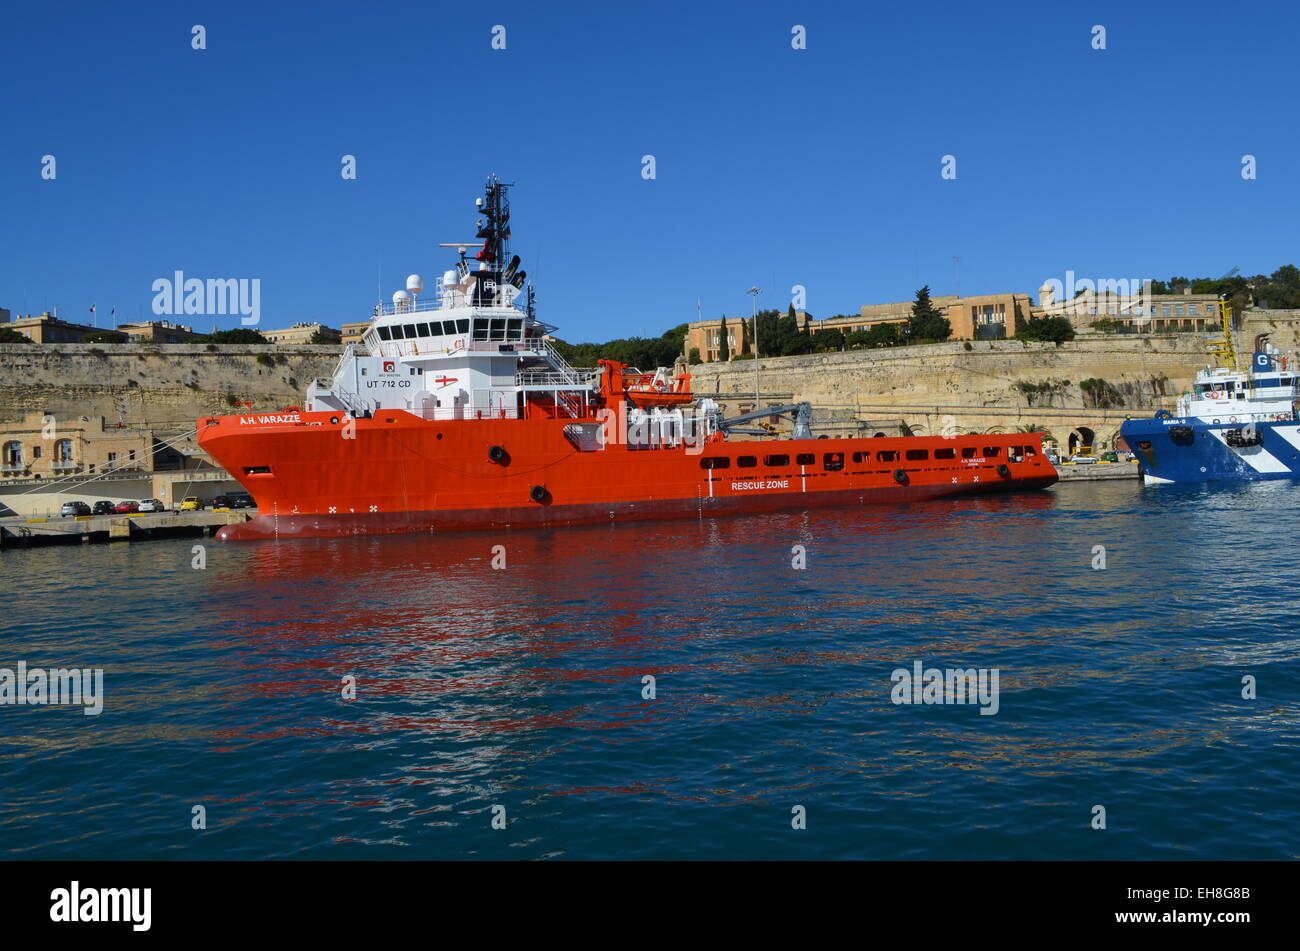 Cruising round the inner walls of the Grand Harbour we pass by another boat moored there under the packed city of - Stock Image